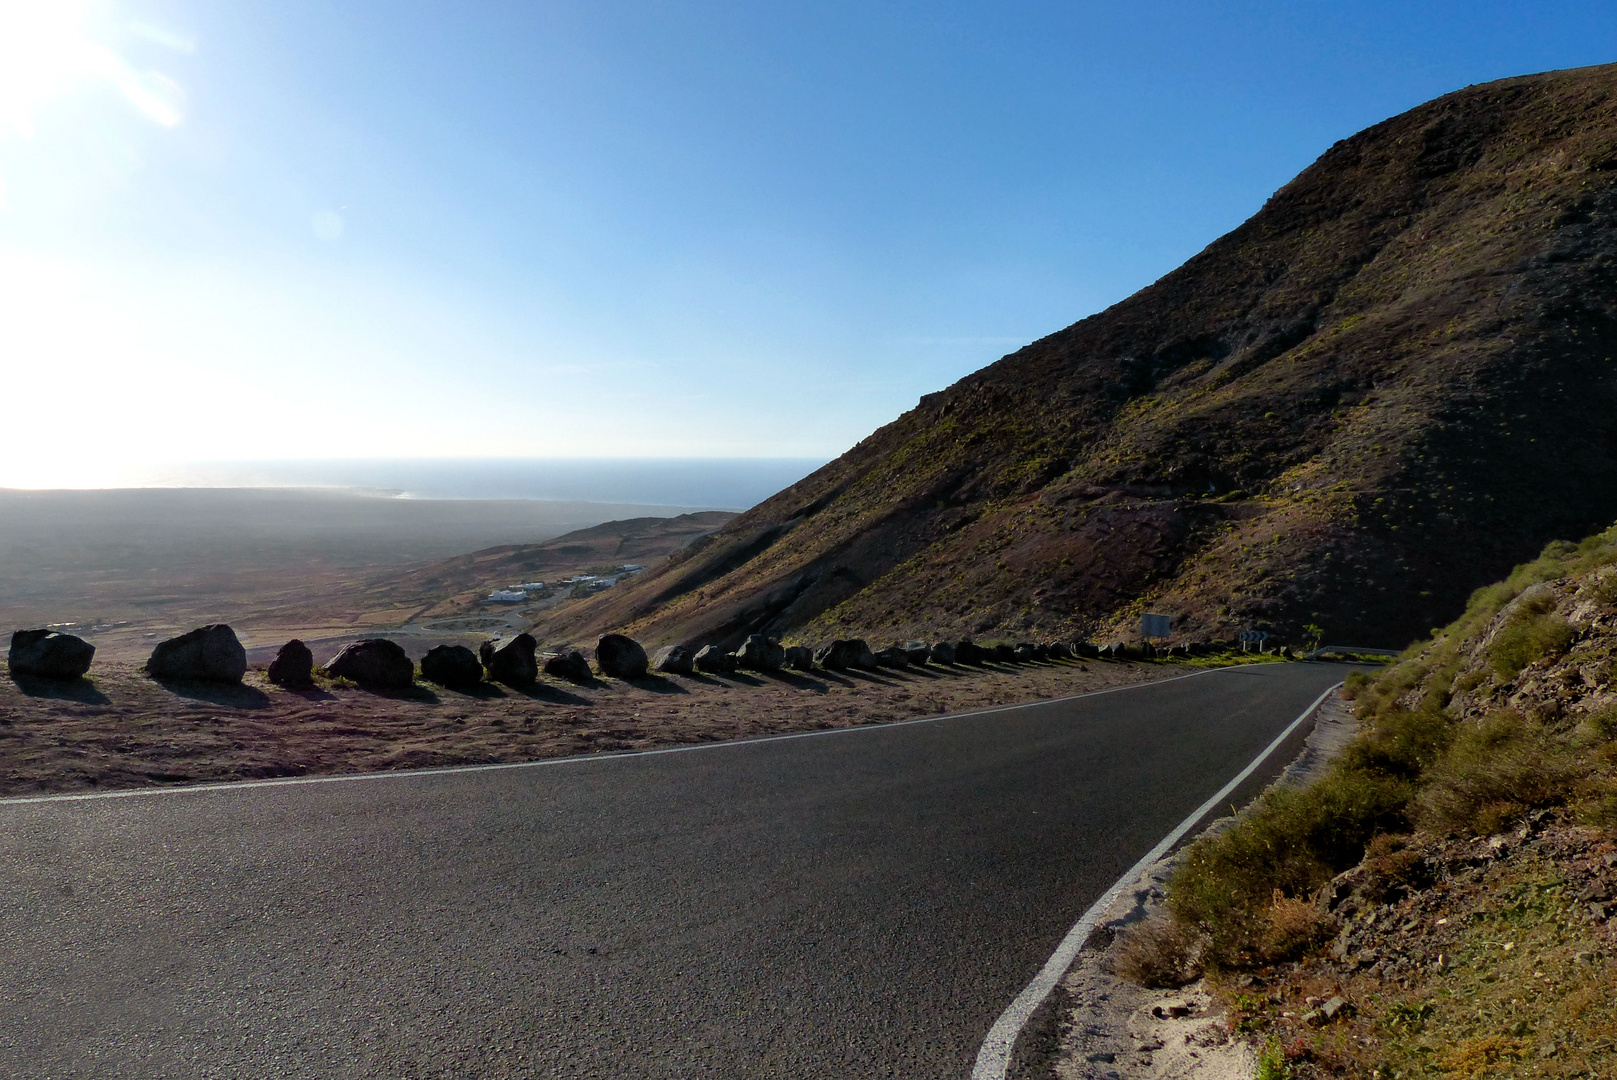 One of the roads of Lanzarote